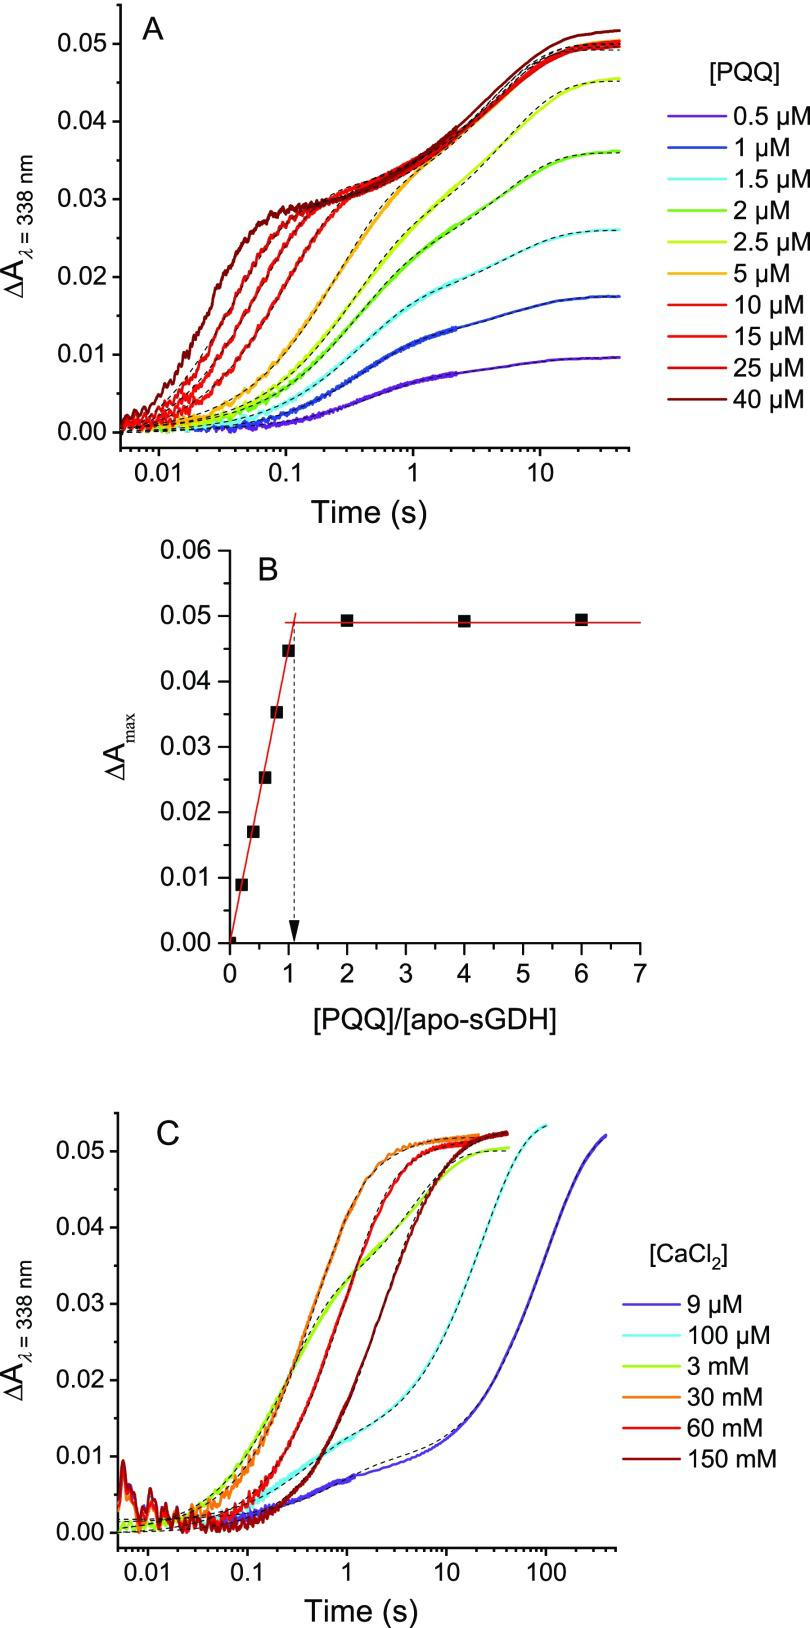 Stopped-flow transient traces of the catalytic reduction of PQQ by glucose during the reconstitution/activation of apo-sGDH into holo-sGDH. (A) Kinetic traces (average of four consecutive experiments) obtained after mixing 2.5 μM subunits of apo-sGDH with 100 μM glucose, 3 mM CaCl 2 , and different concentrations of PQQ (from left to right): 40, 25, 15, 10, 5, 2.5, 2, 1.5, 1, and 0.5 μM (the code color for each [PQQ] is reported on the graph). All concentrations given are after mixing. The reactions were monitored at 338 nm and 10 °C in a 50 mM Tris buffer (pH 7.5). (B) Titration plot of apo-GDH by PQQ obtained from the plot of total absorbance change in (A) as a function of the [PQQ]/[apo-sGDH] ratio. (C) Kinetic traces (average of four consecutive experiments) obtained after mixing 2.5 μM subunits of apo-sGDH with 5 μM PQQ (2-fold excess), 100 μM glucose, and different concentrations of CaCl 2 : 9 μM, 100 μM, 3 mM, 30 mM, 60 mM, and 150 mM (the code color for each [CaCl 2 ] is reported on the graph). All concentrations given are after mixing, and other experimental conditions are the same as in (A). The black dotted curves in (A) and (C) are the best fits of a biexponential law to the experimental data.